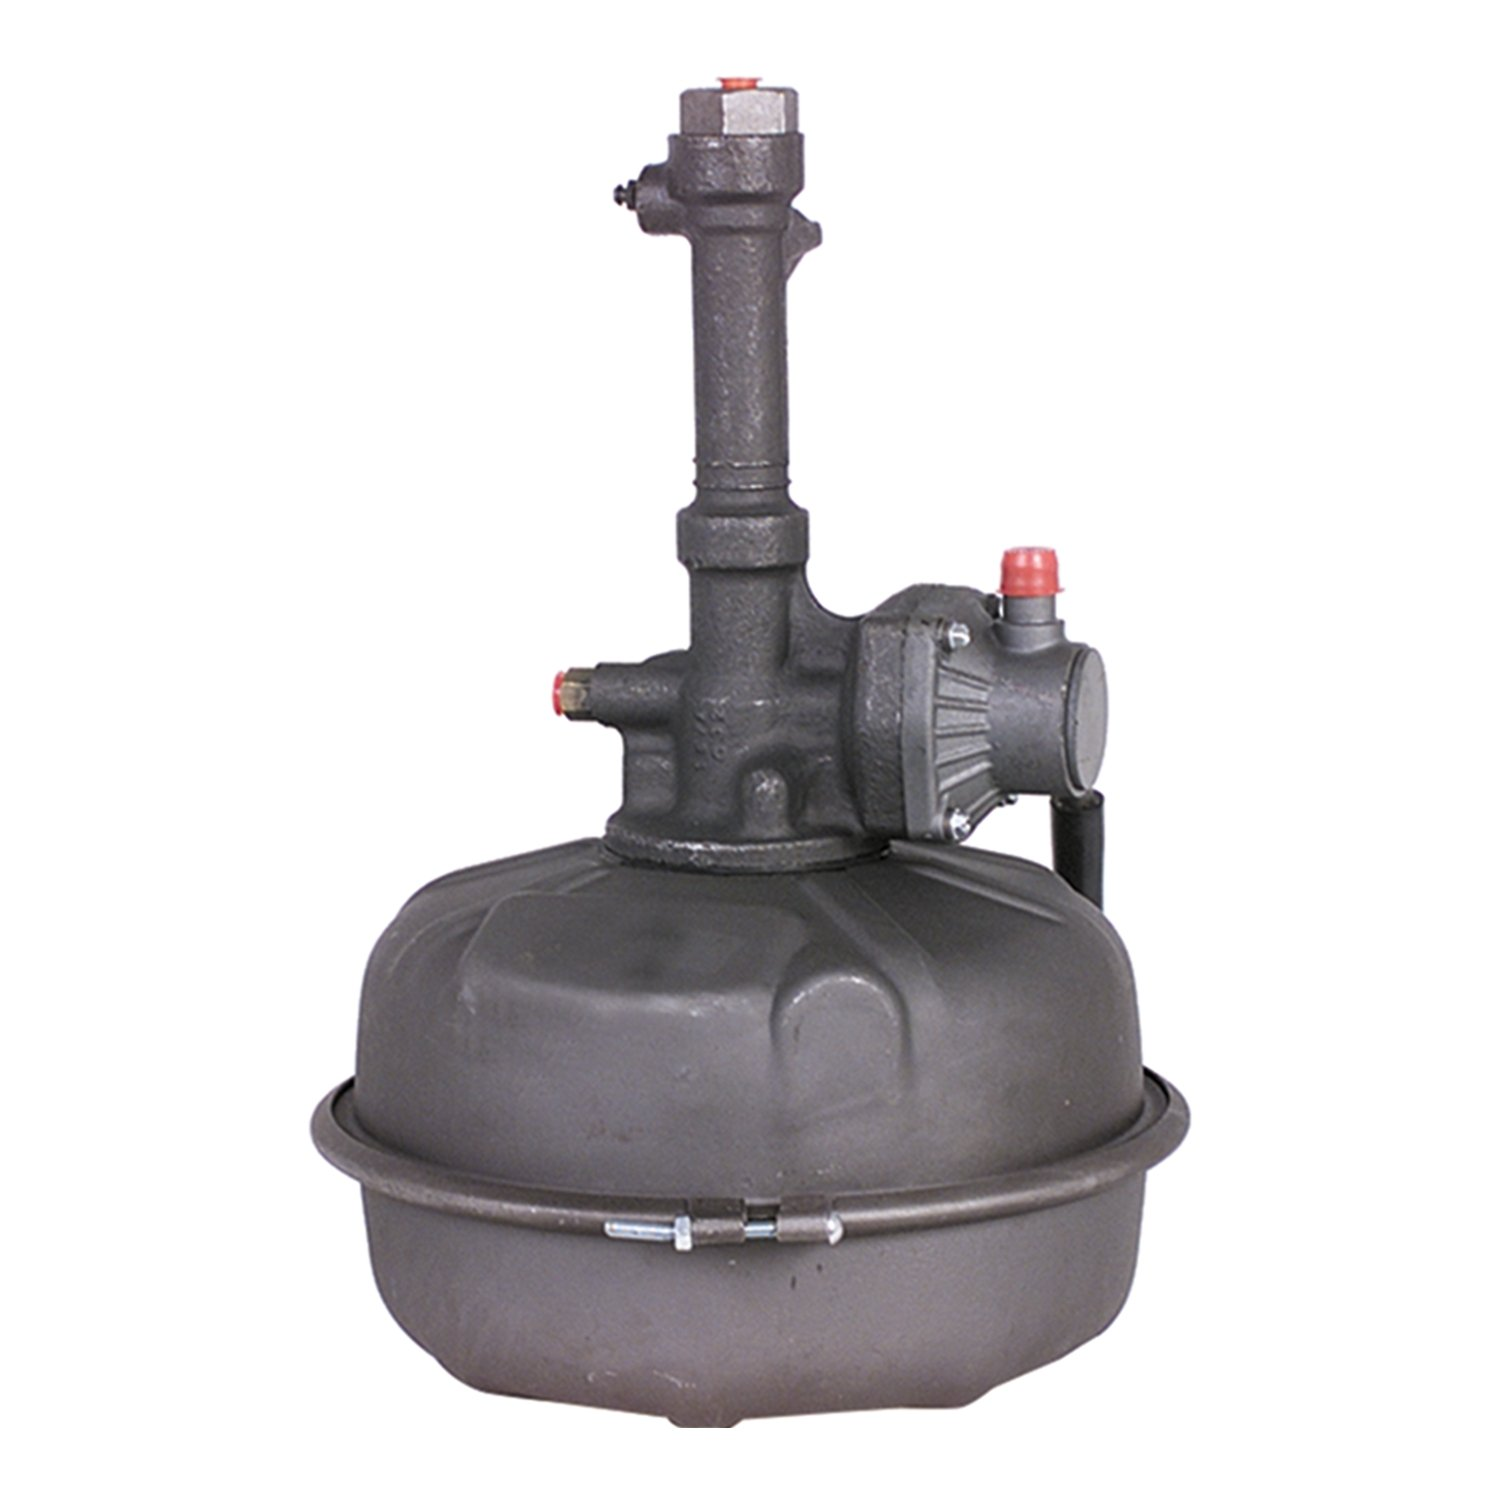 Cardone 51-8024 Remanufactured Hydrovac Booster by Cardone